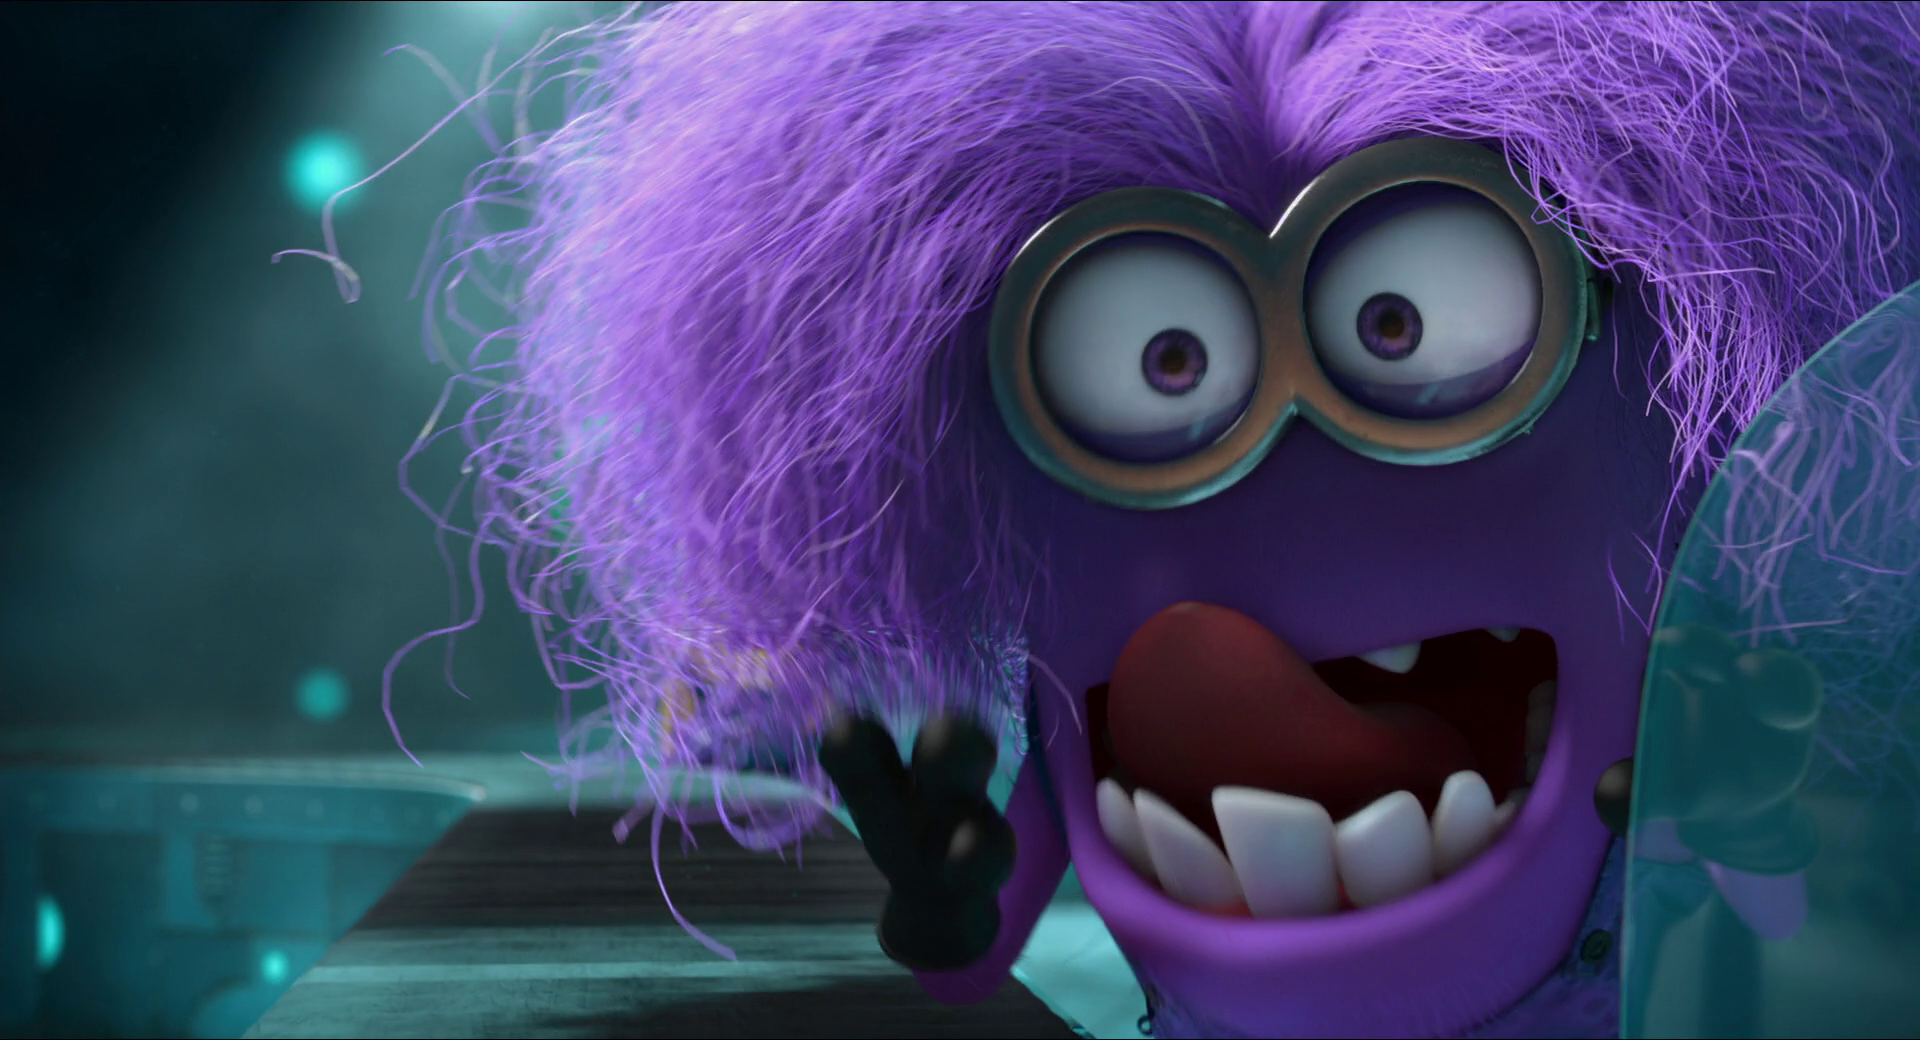 Purple Minion Moment: I am not chilled.